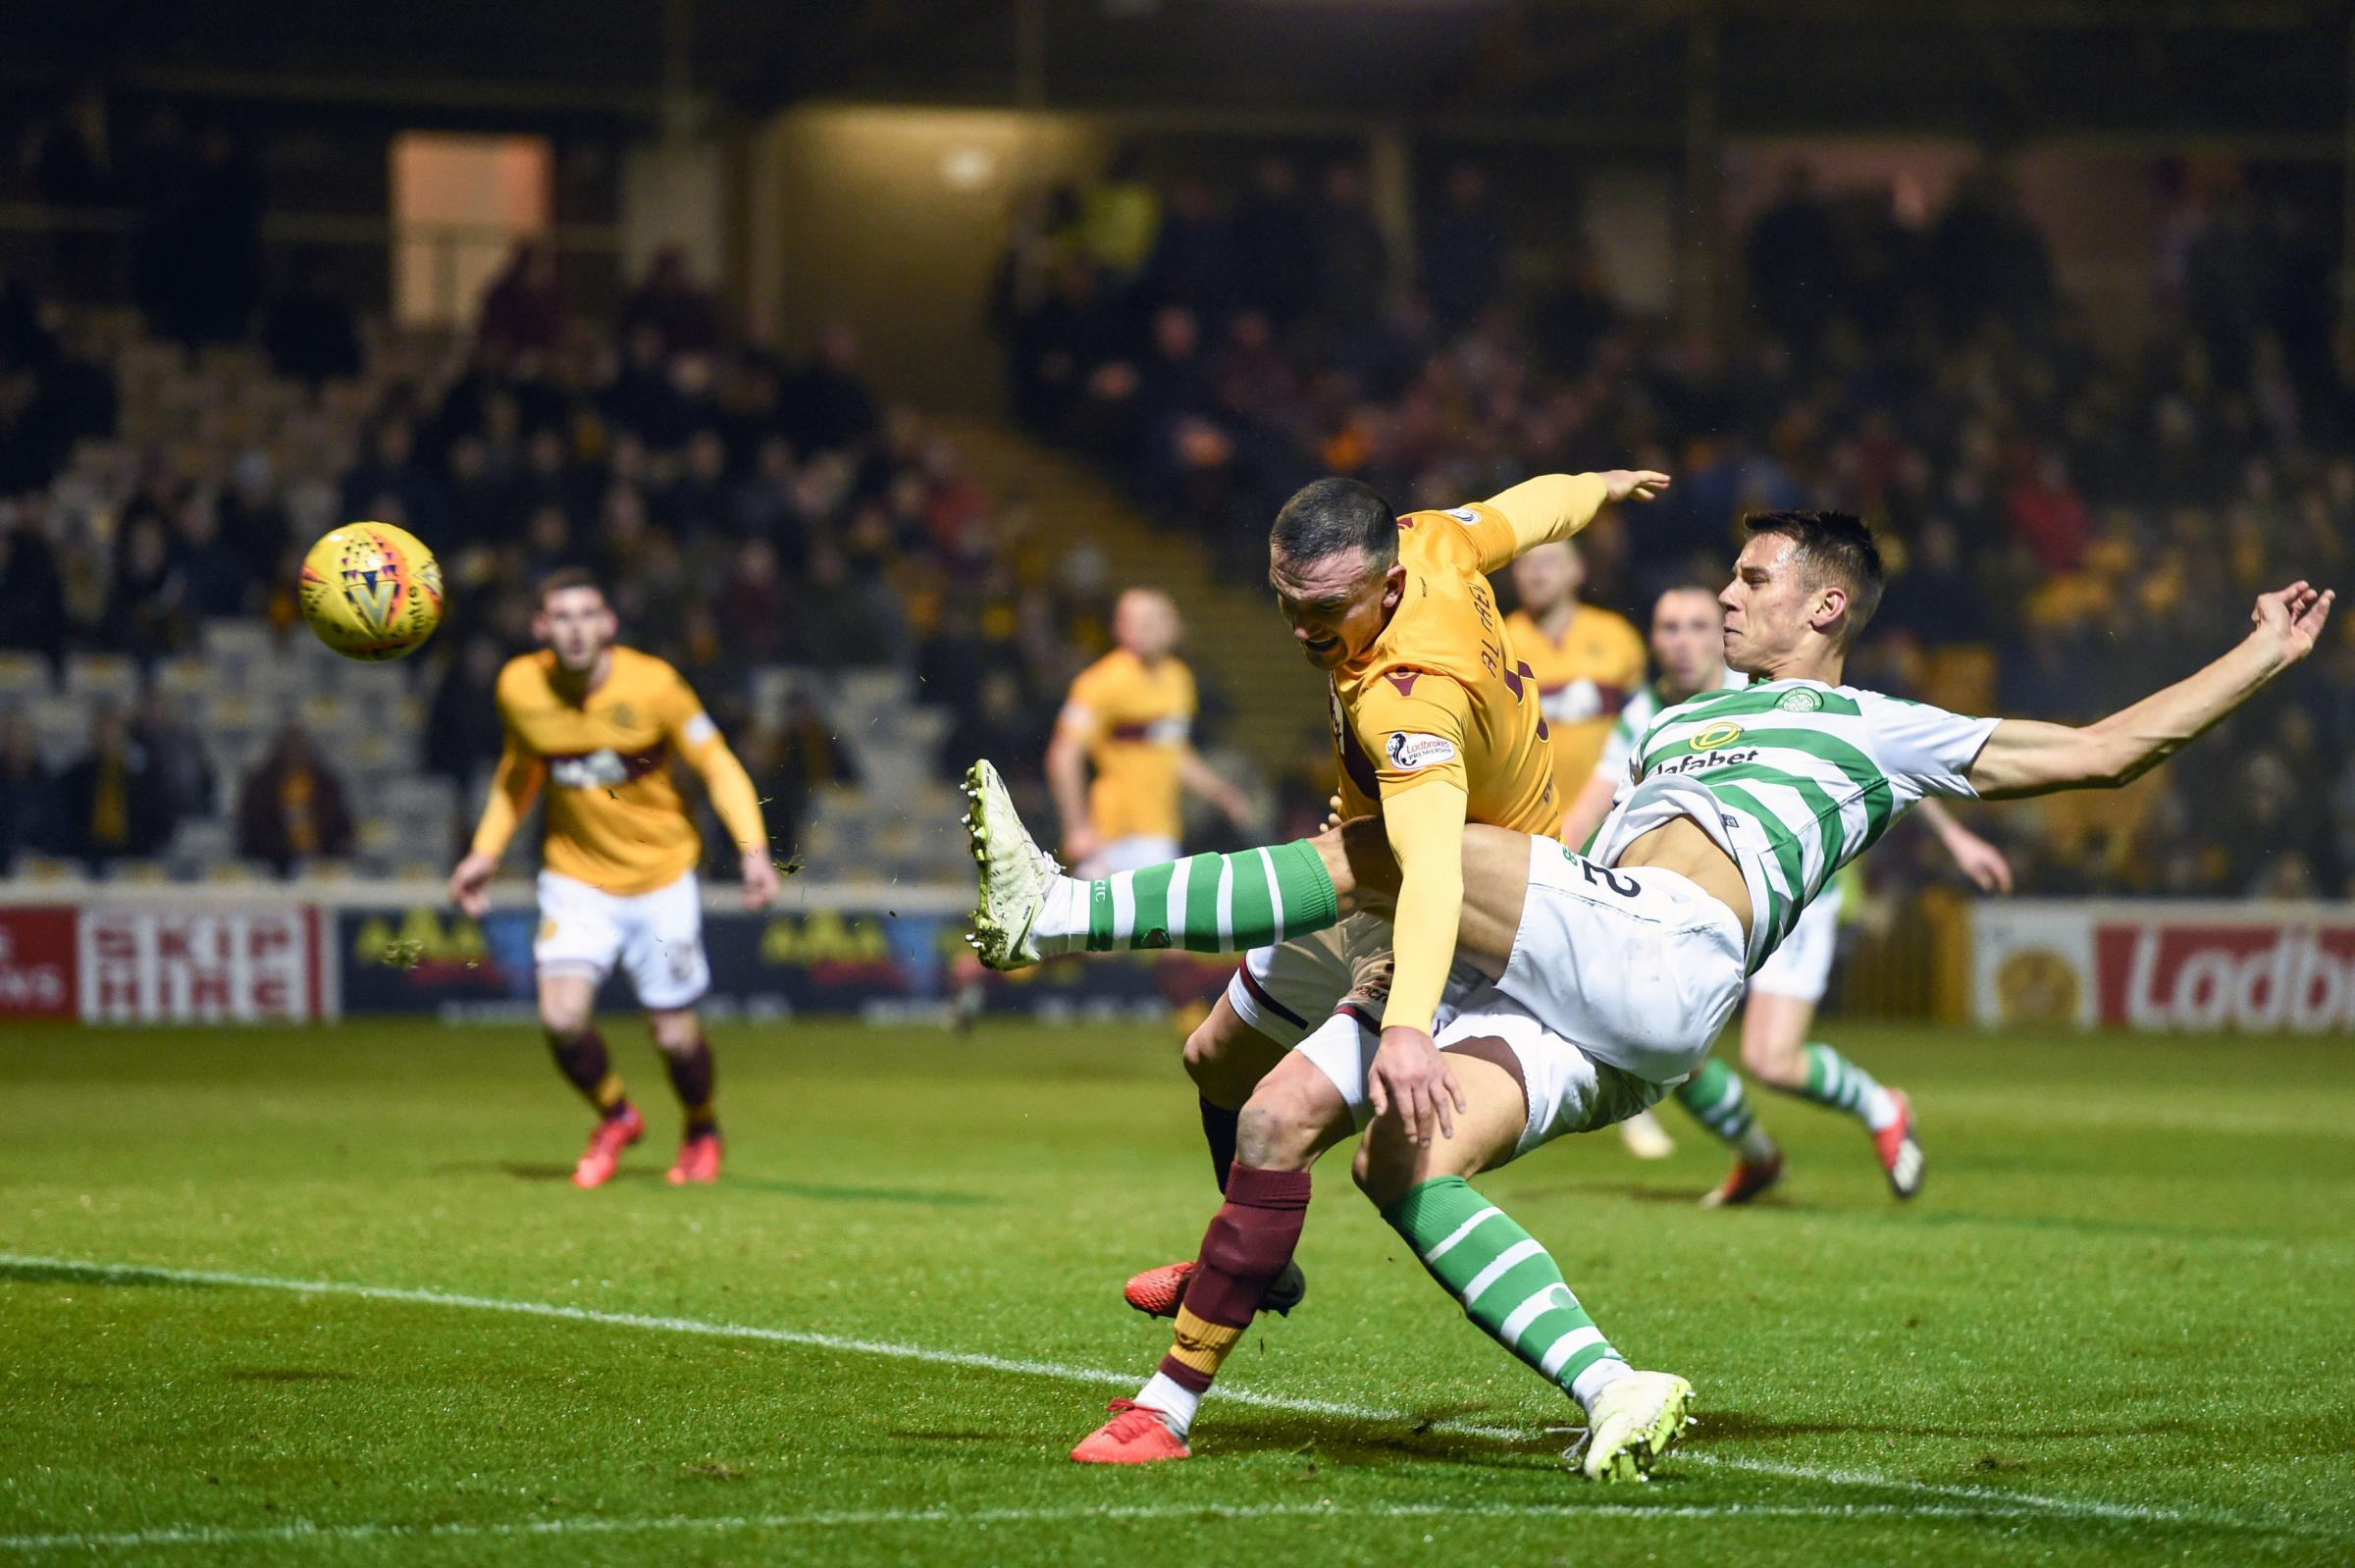 Celtic's Filip Benkovic scores as he is challenged by  Motherwell's Tom Aldred but it is later disallowed during the Ladbrokes Scottish Premiership match at Fir Park, Motherwell. PRESS ASSOCIATION Photo. Picture date: Wednesday December 5, 2018. S